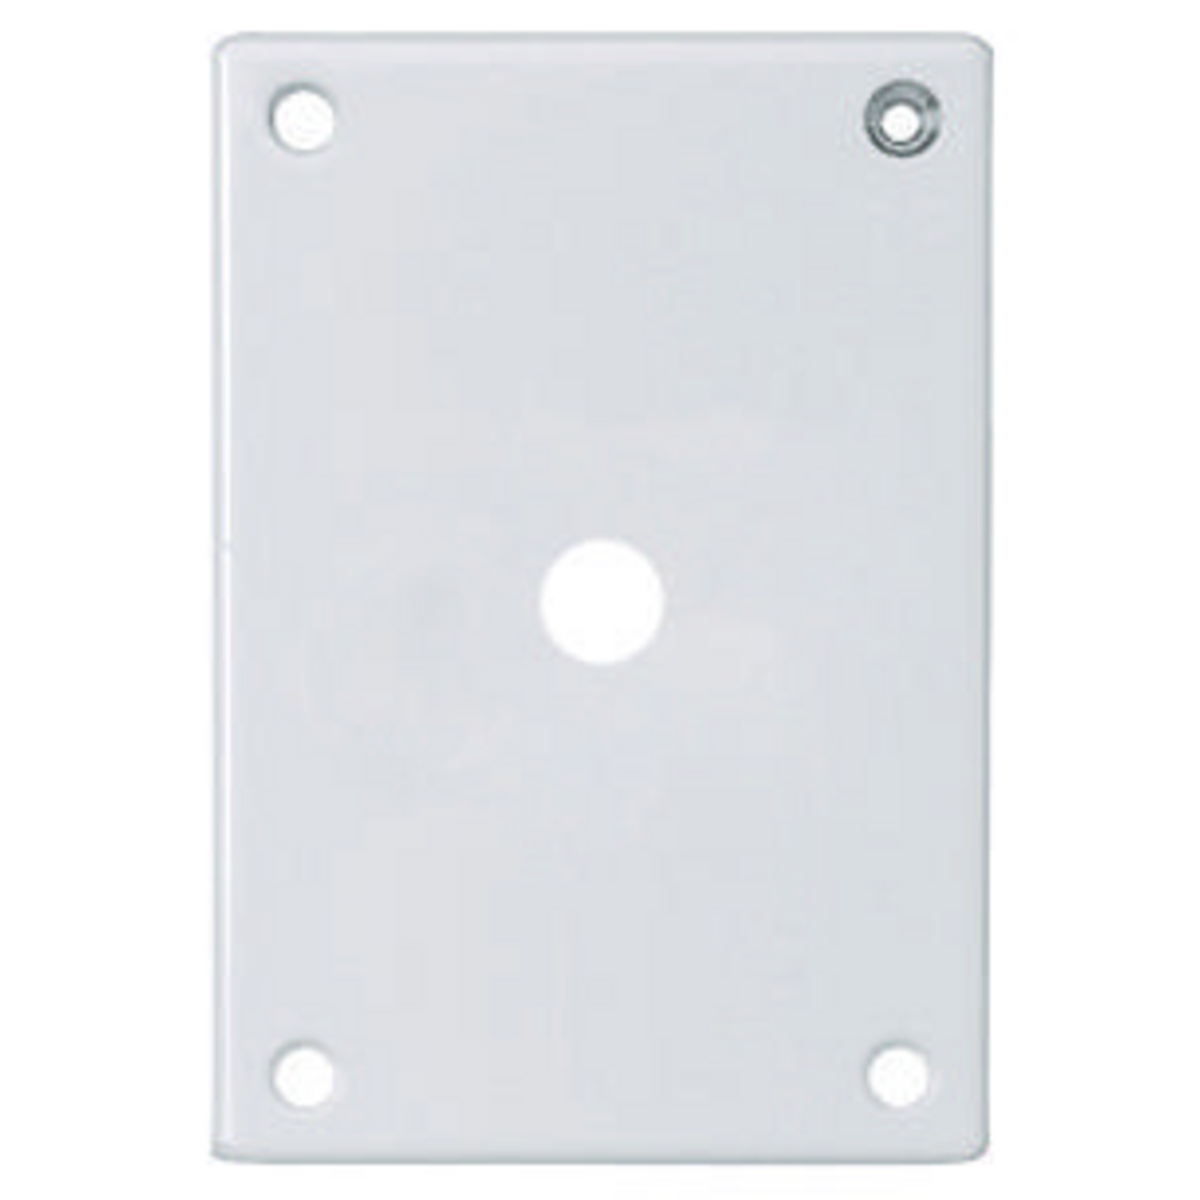 Hubbell SWP12 SEC WALLPLATE, 1-G, TELE/TV, WH